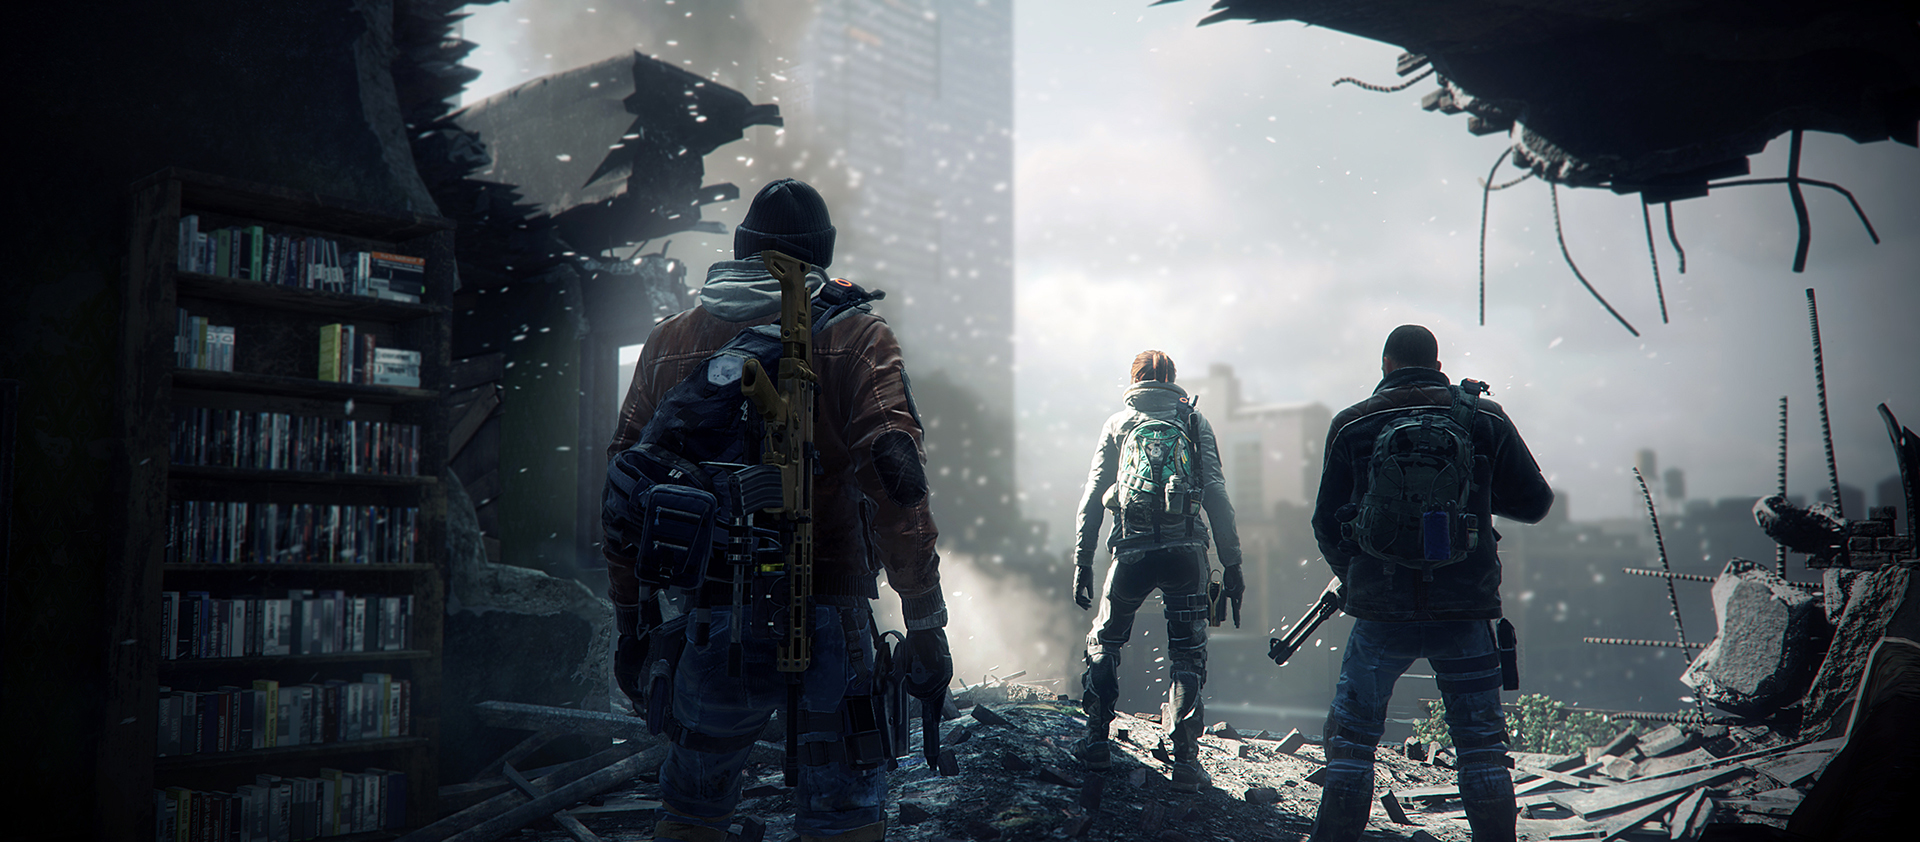 The Division' Needs Improvements, Starting With Loot   Inverse